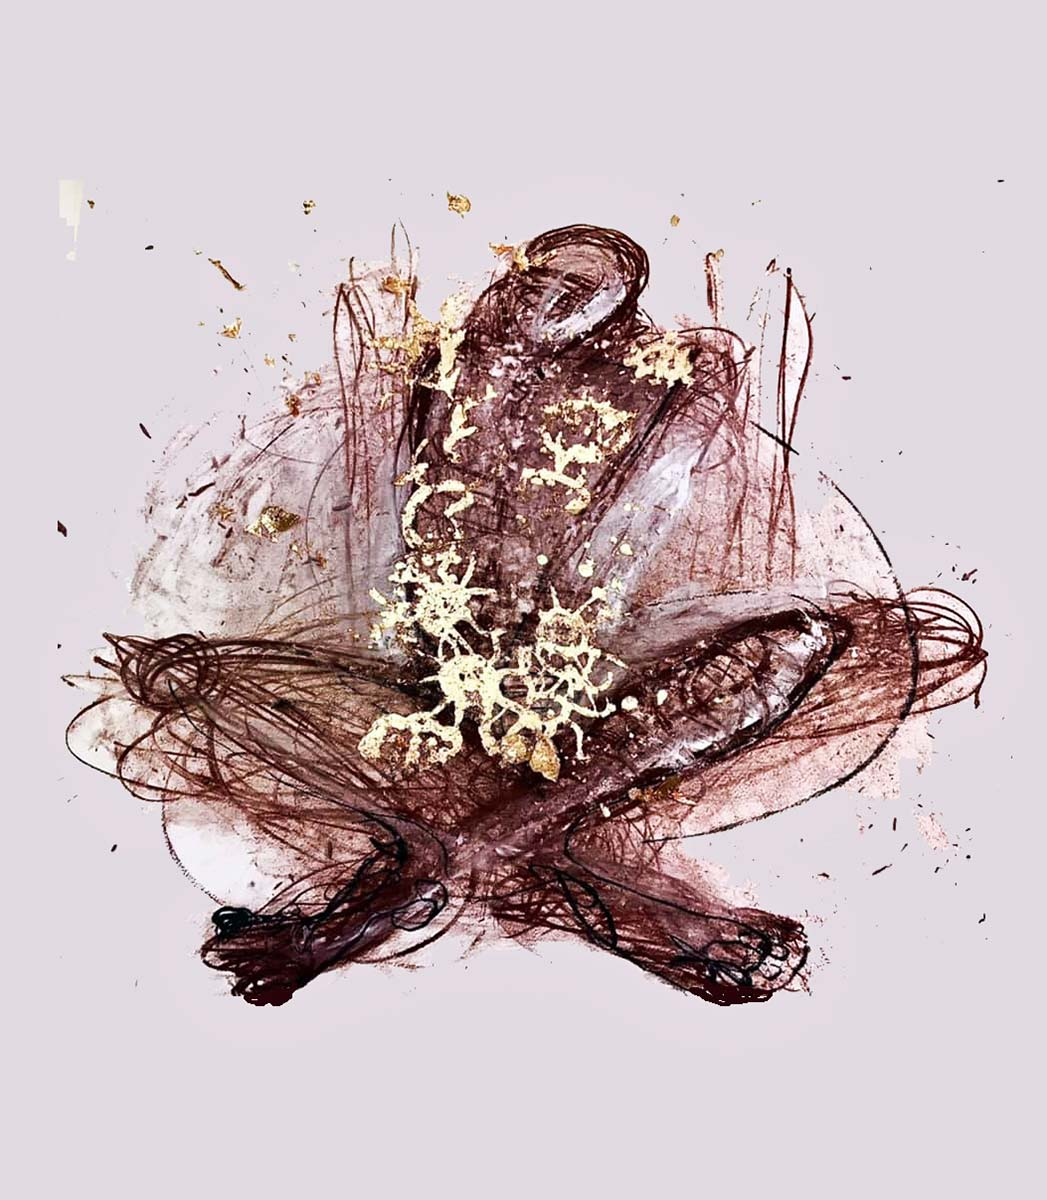 A burnt sienna figure sits armless and cross legged in a pale pink hue space. Speckles of gold dust and gold leaf shower down onto the figure, as antibody like shapes emerge in the centre.